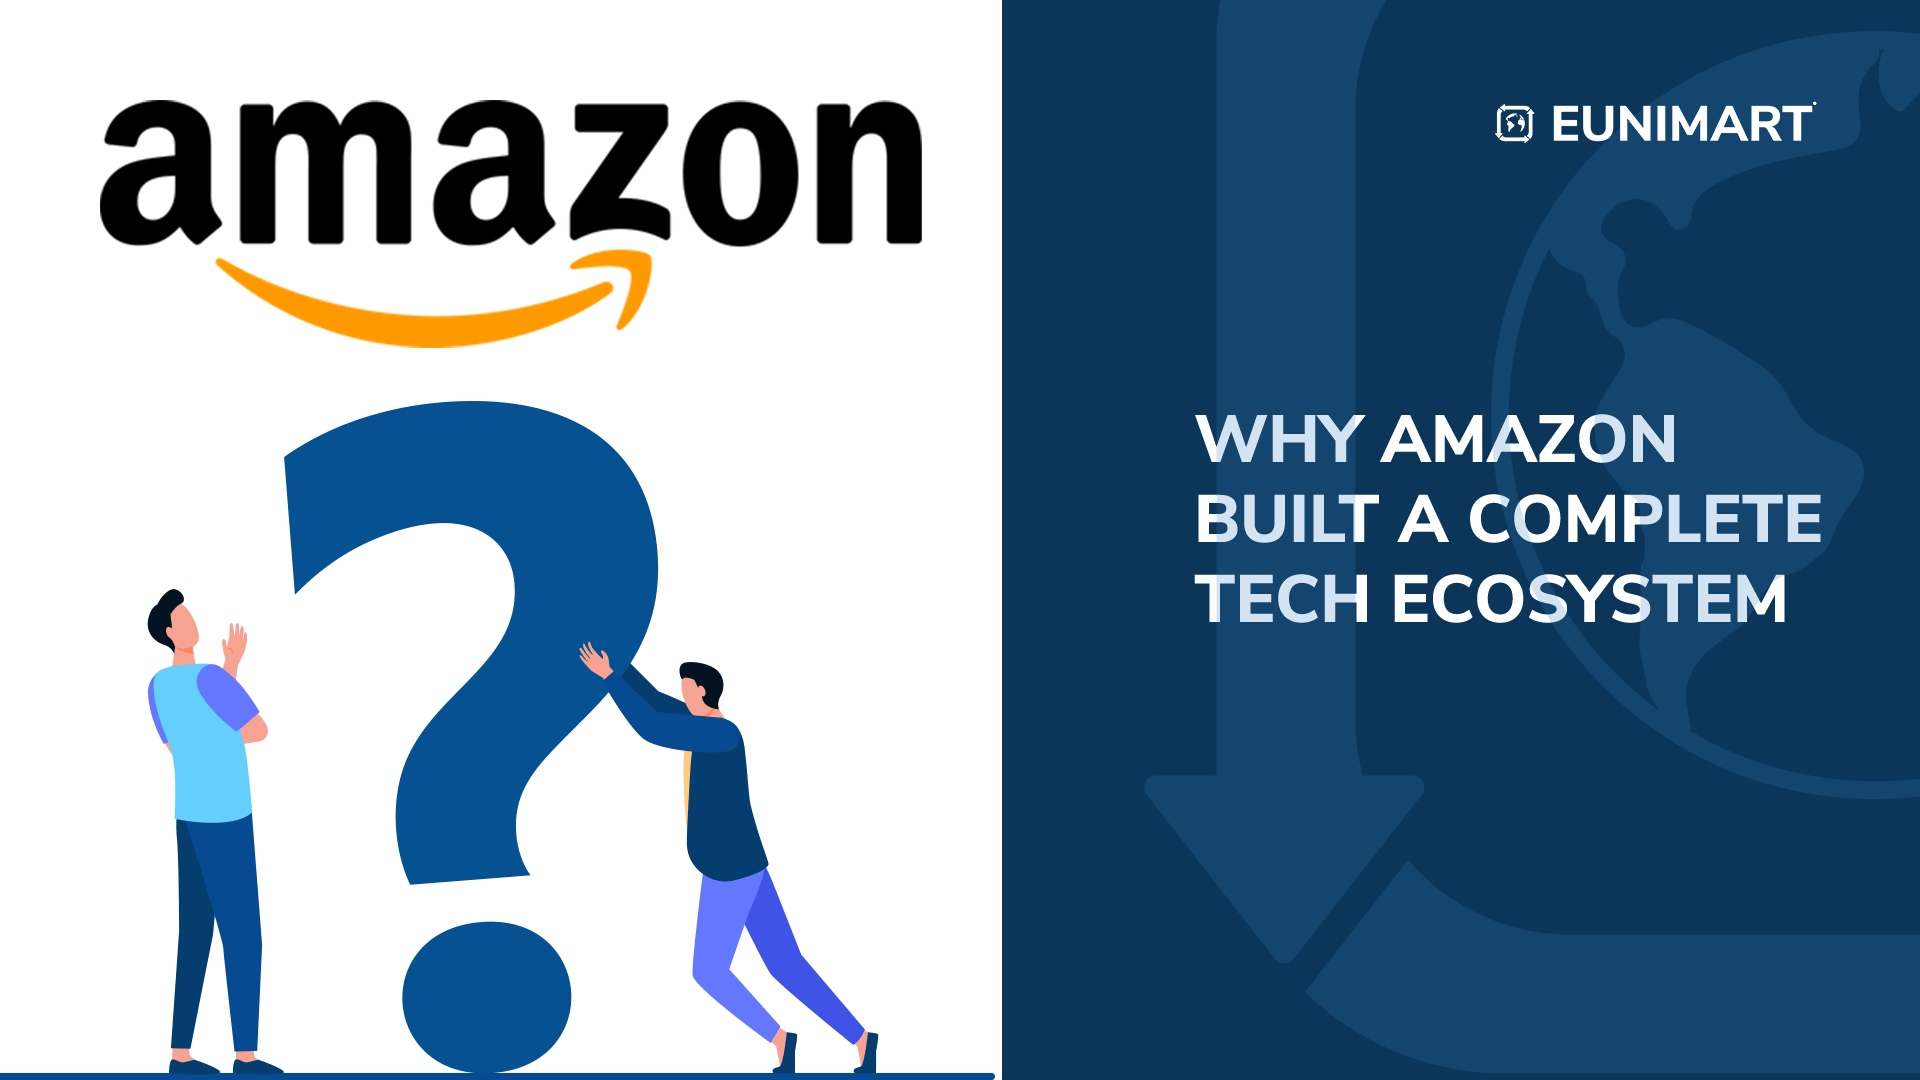 Why Amazon built a complete tech eco system